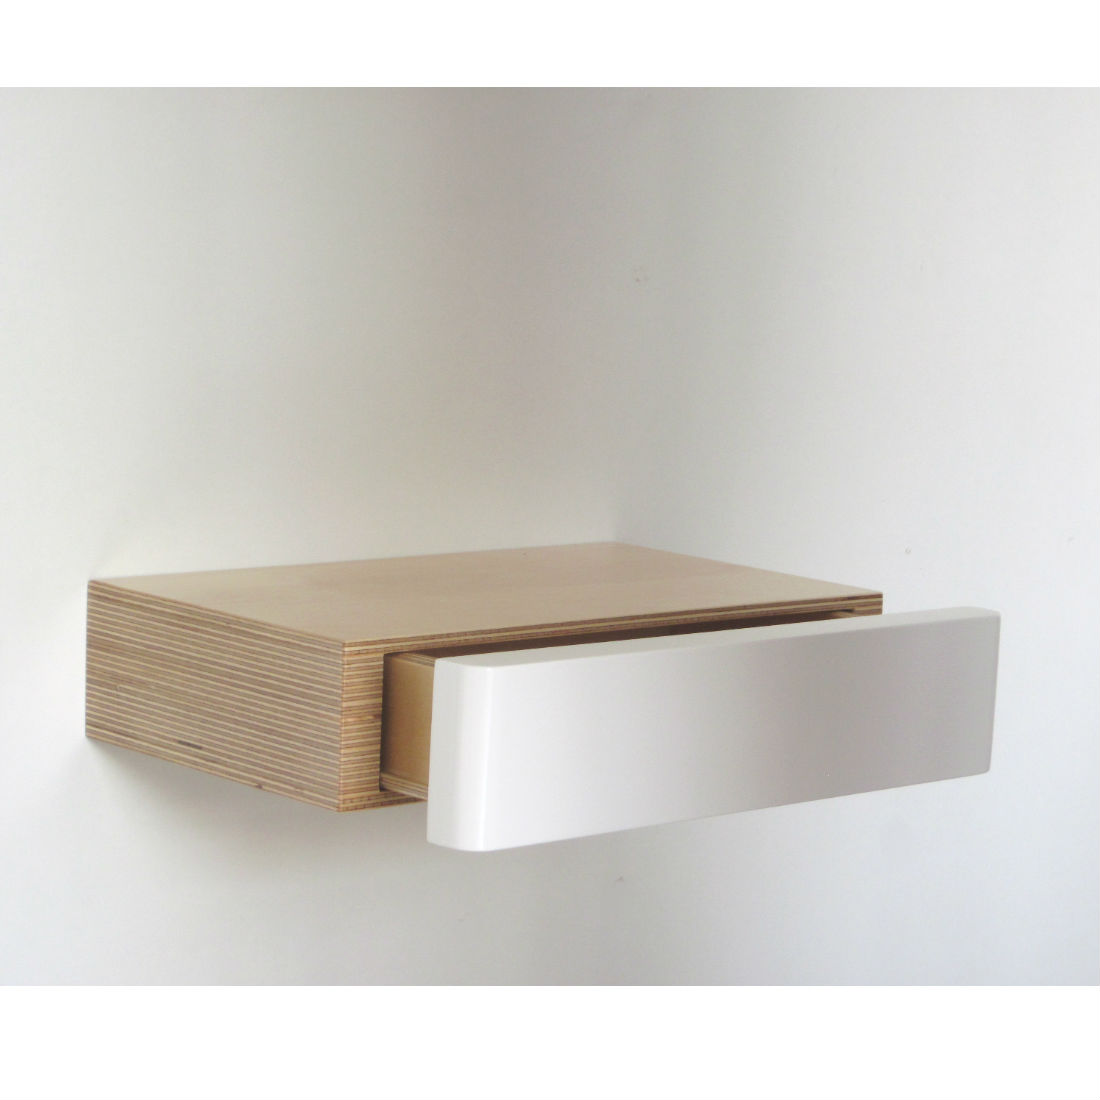 Floating Drawer pacco floating drawer: birch white – homeware, furniture and gifts